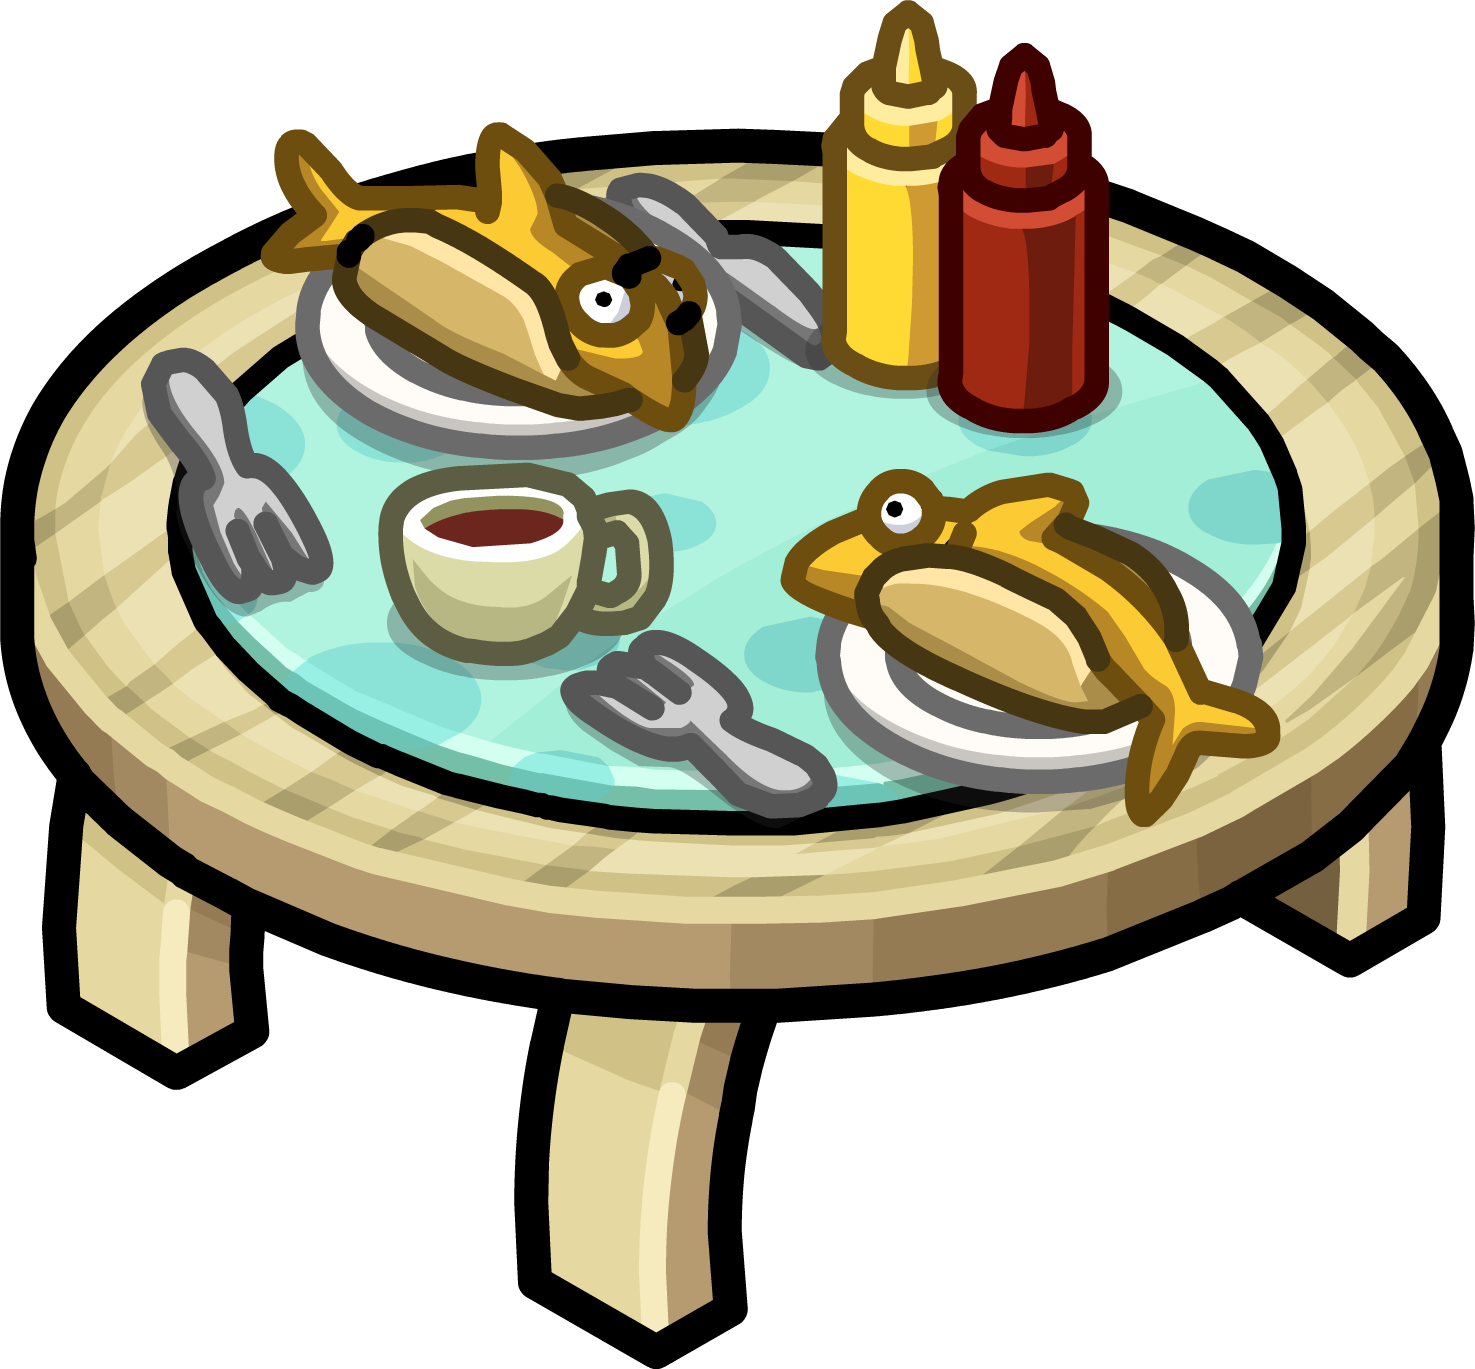 Table for two club penguin wiki fandom powered by wikia for Table for two